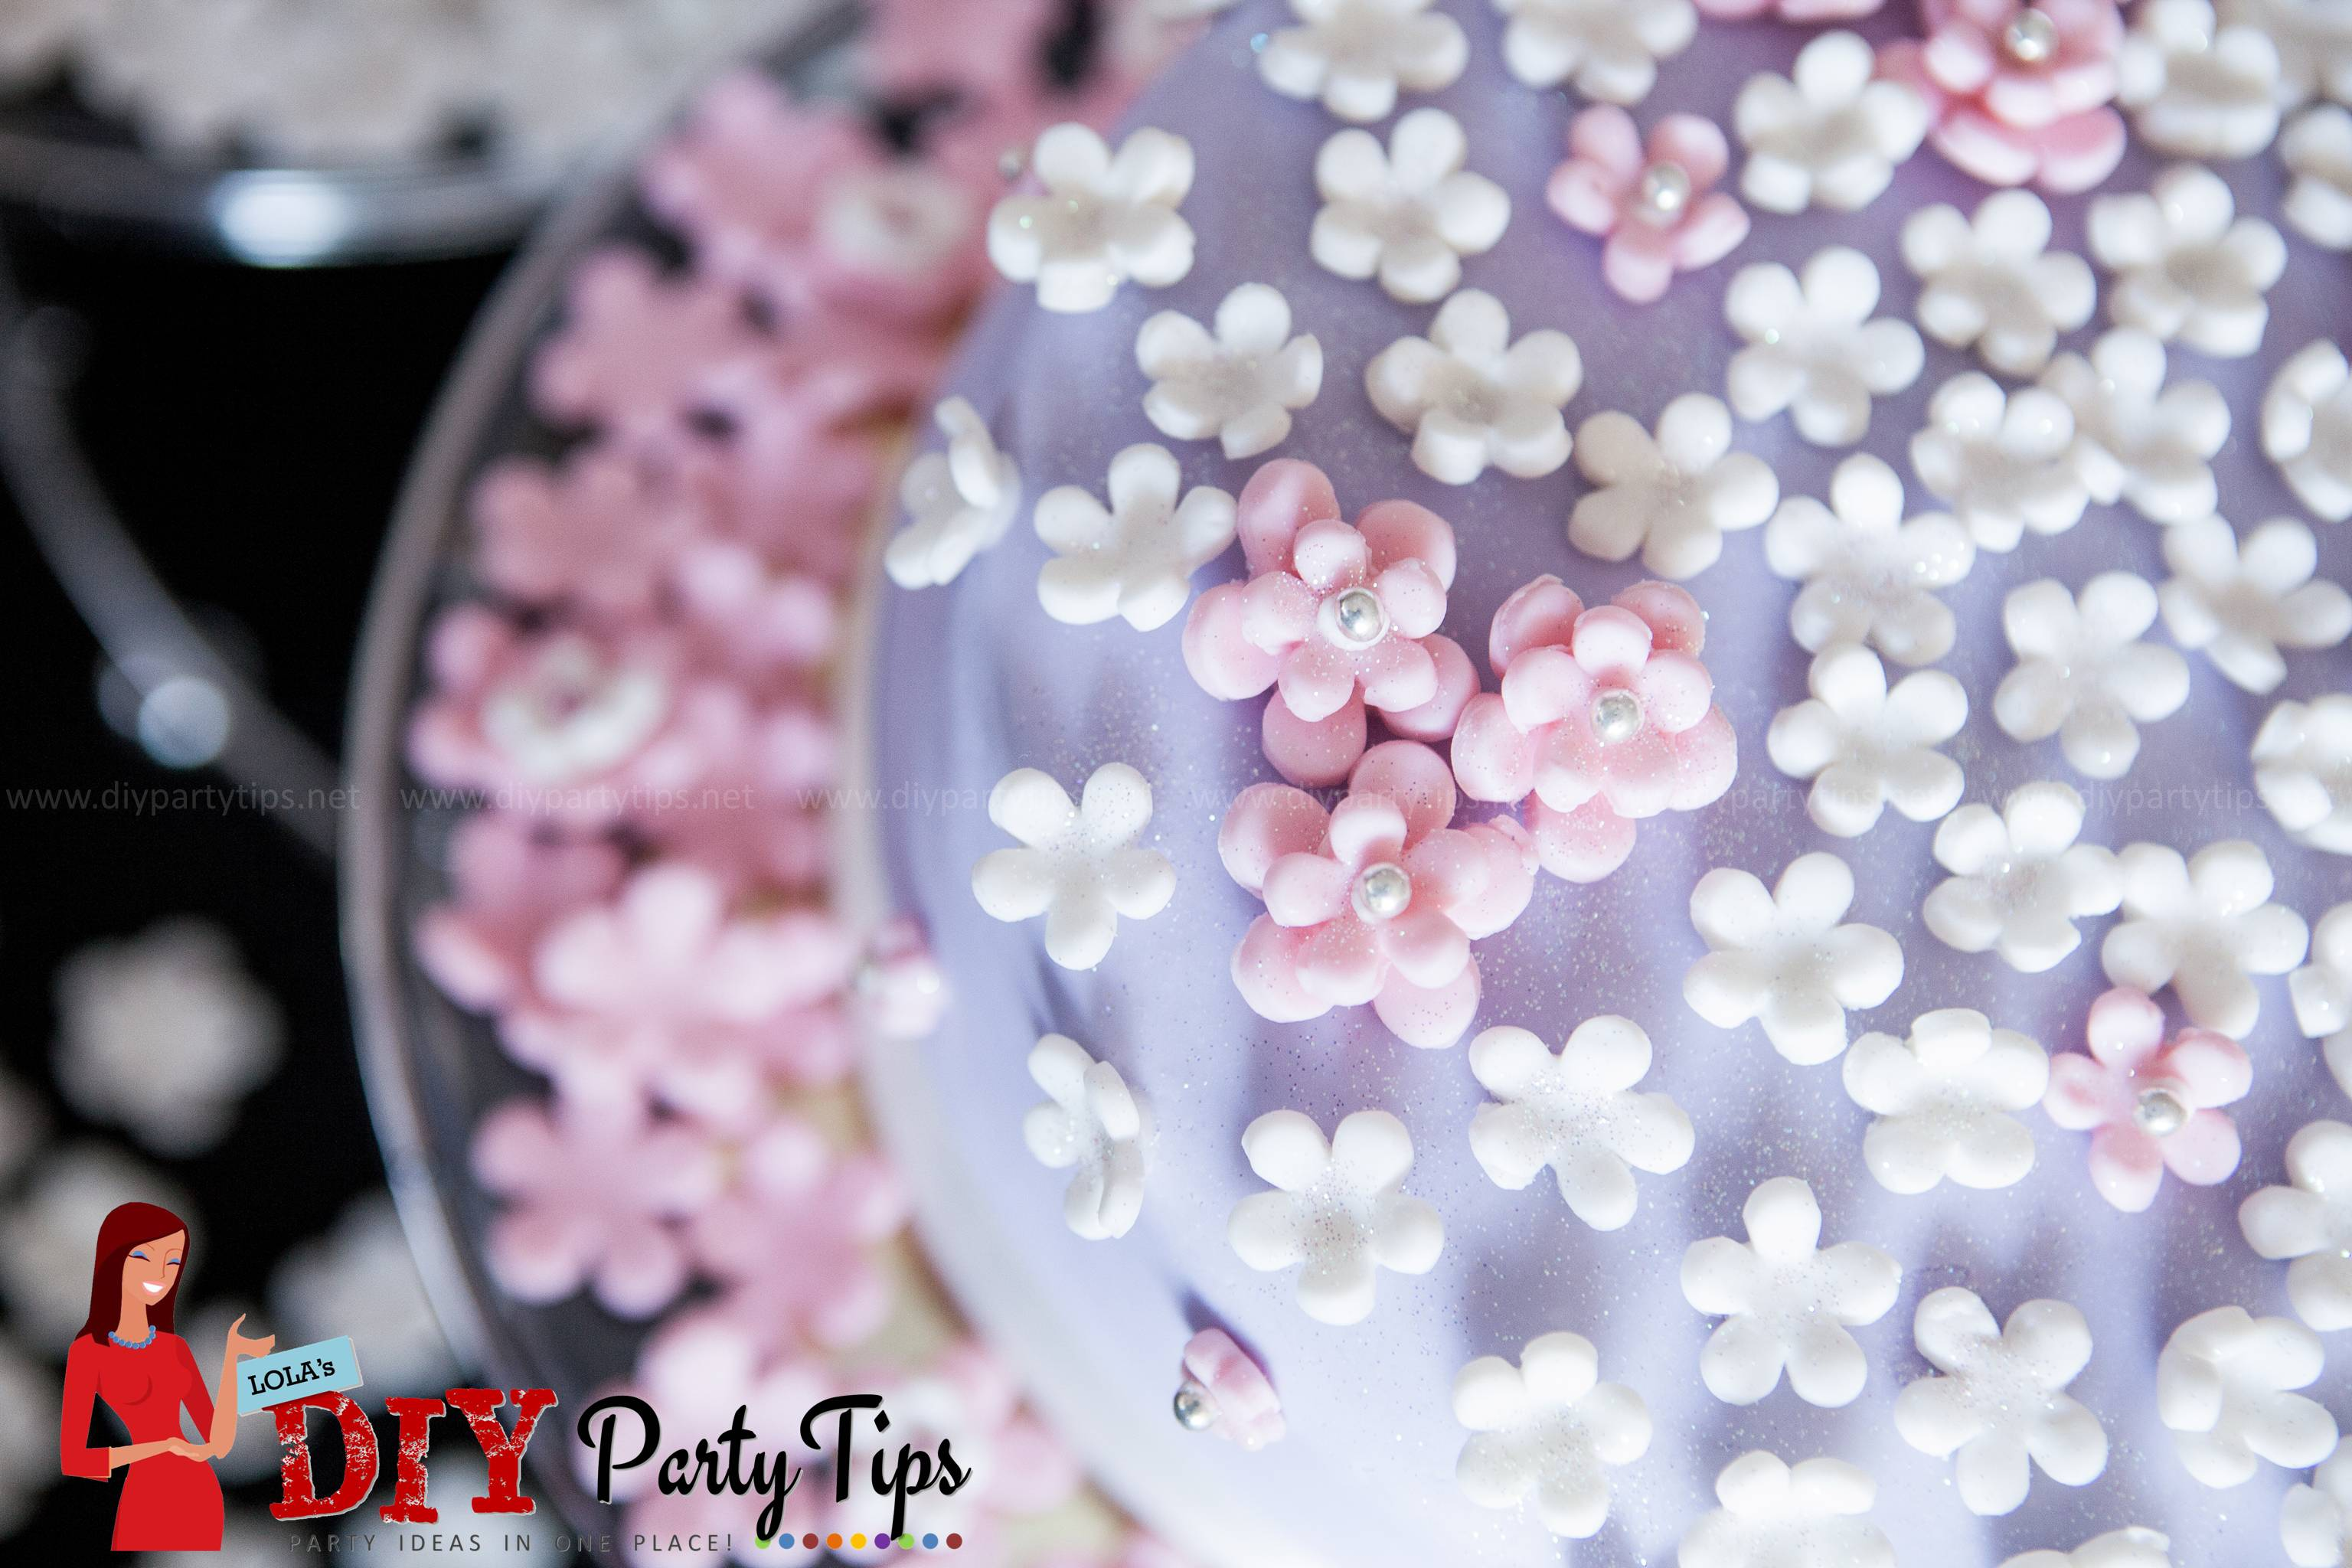 Putting Marshmallow Fondant On A Cake